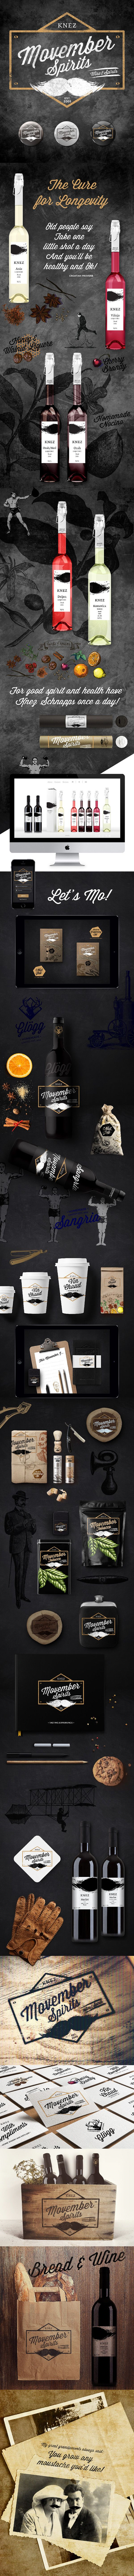 Movember Spirits on Behance by Ivana Momcilovic even though it's not November this packaging campaign moved me : ) PD